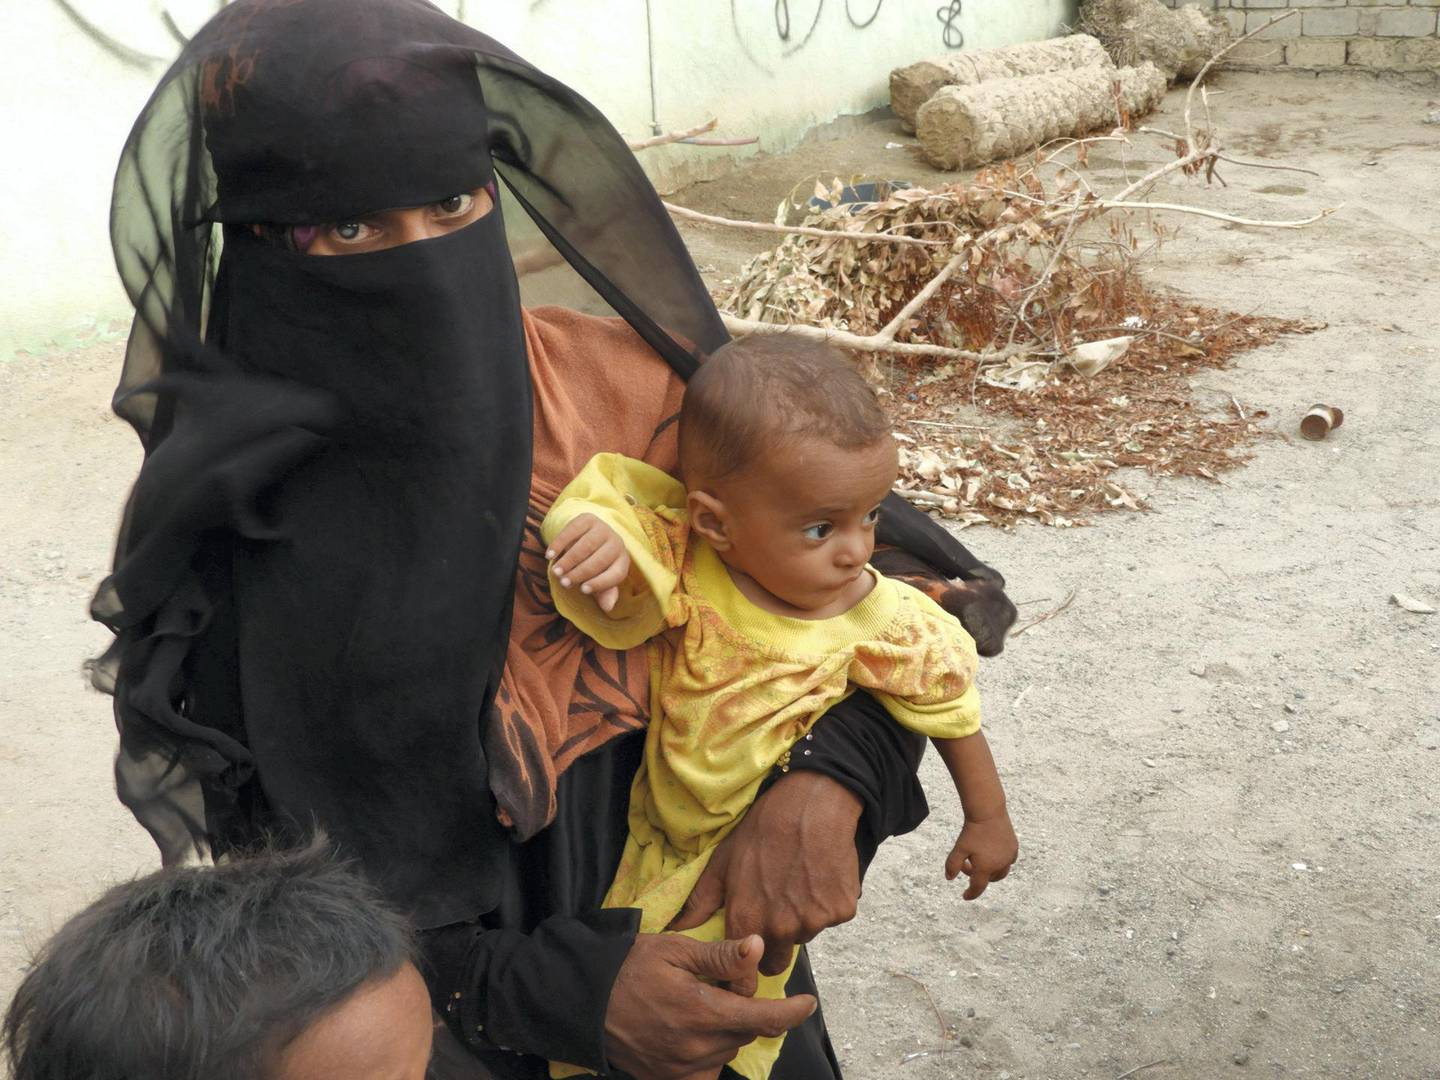 The woman with her baby. Ali Mahmood Mohamed for The National